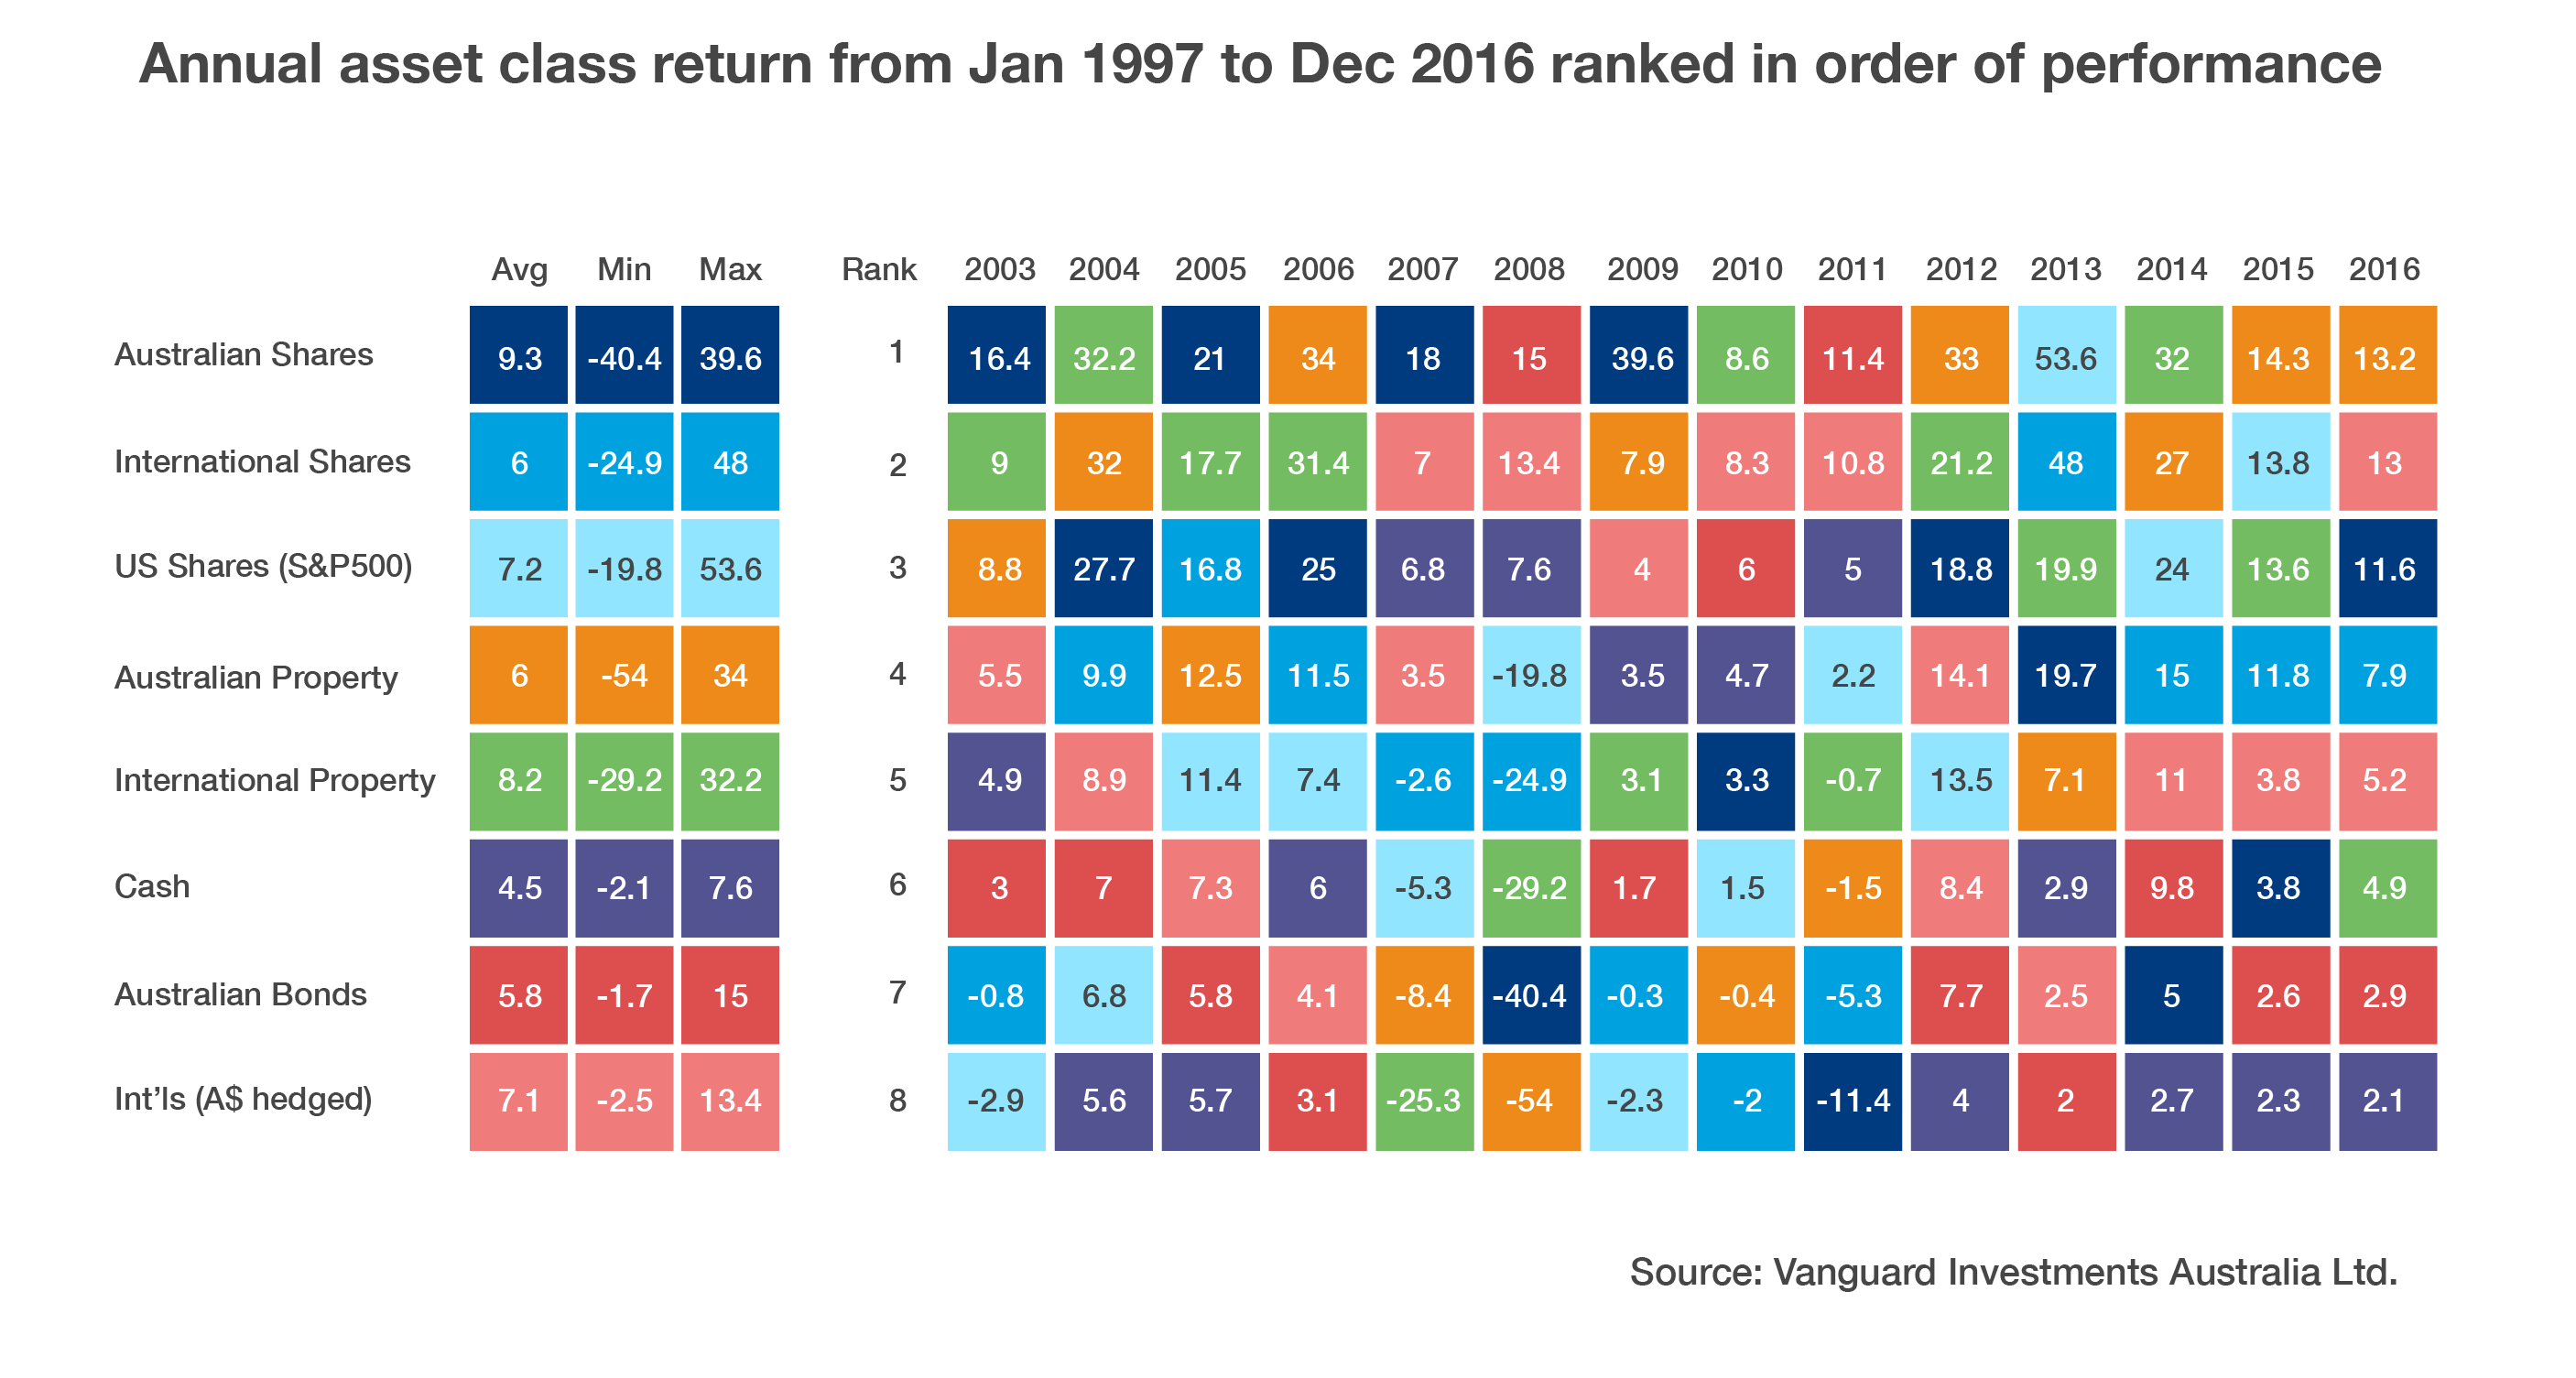 Annual asset class return from January 1997 to December 2016 ranked in order of performance.